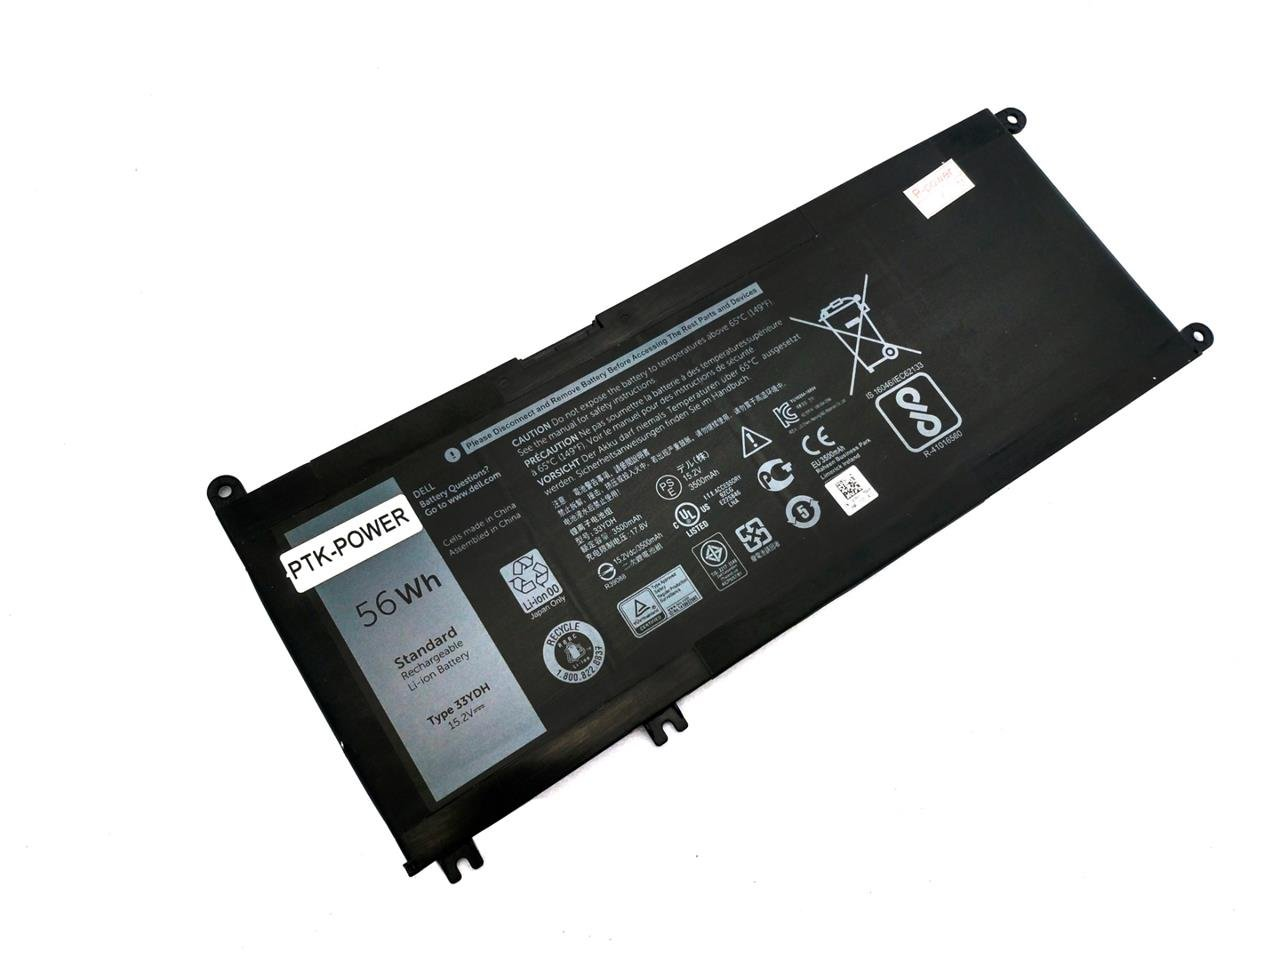 PTK-POWER 15.2V 56Wh TYPE: 33YDH NoteBook Battery For Dell Inspiron 7778 Dell Inspiron 7779 Laptop batteries